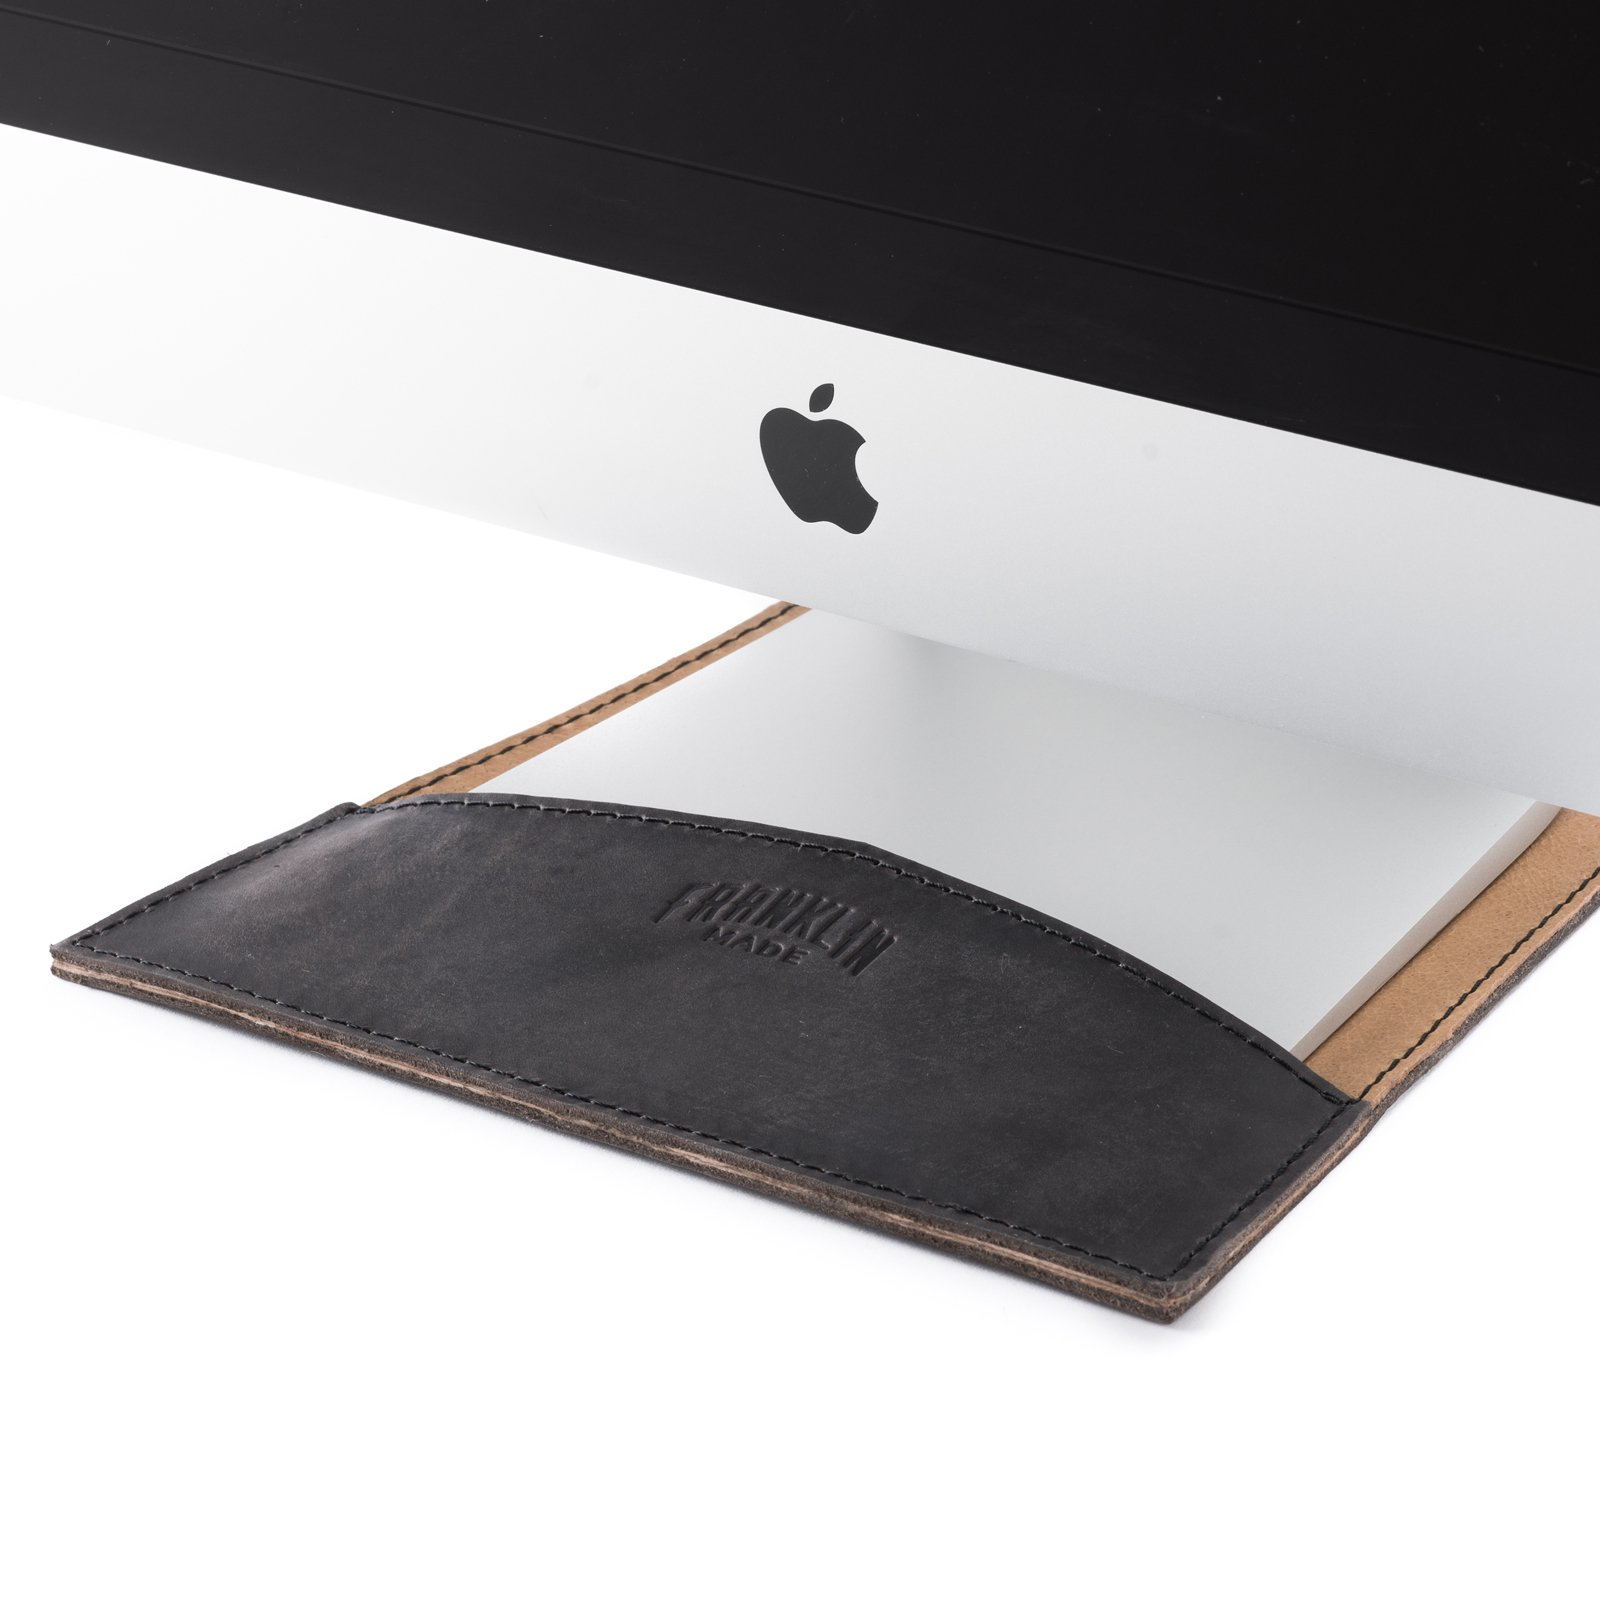 100% Full Grain Black Leather 4 Piece 27'' Apple Computer Desktop Set - Made in USA by Franklin Made (Image #2)